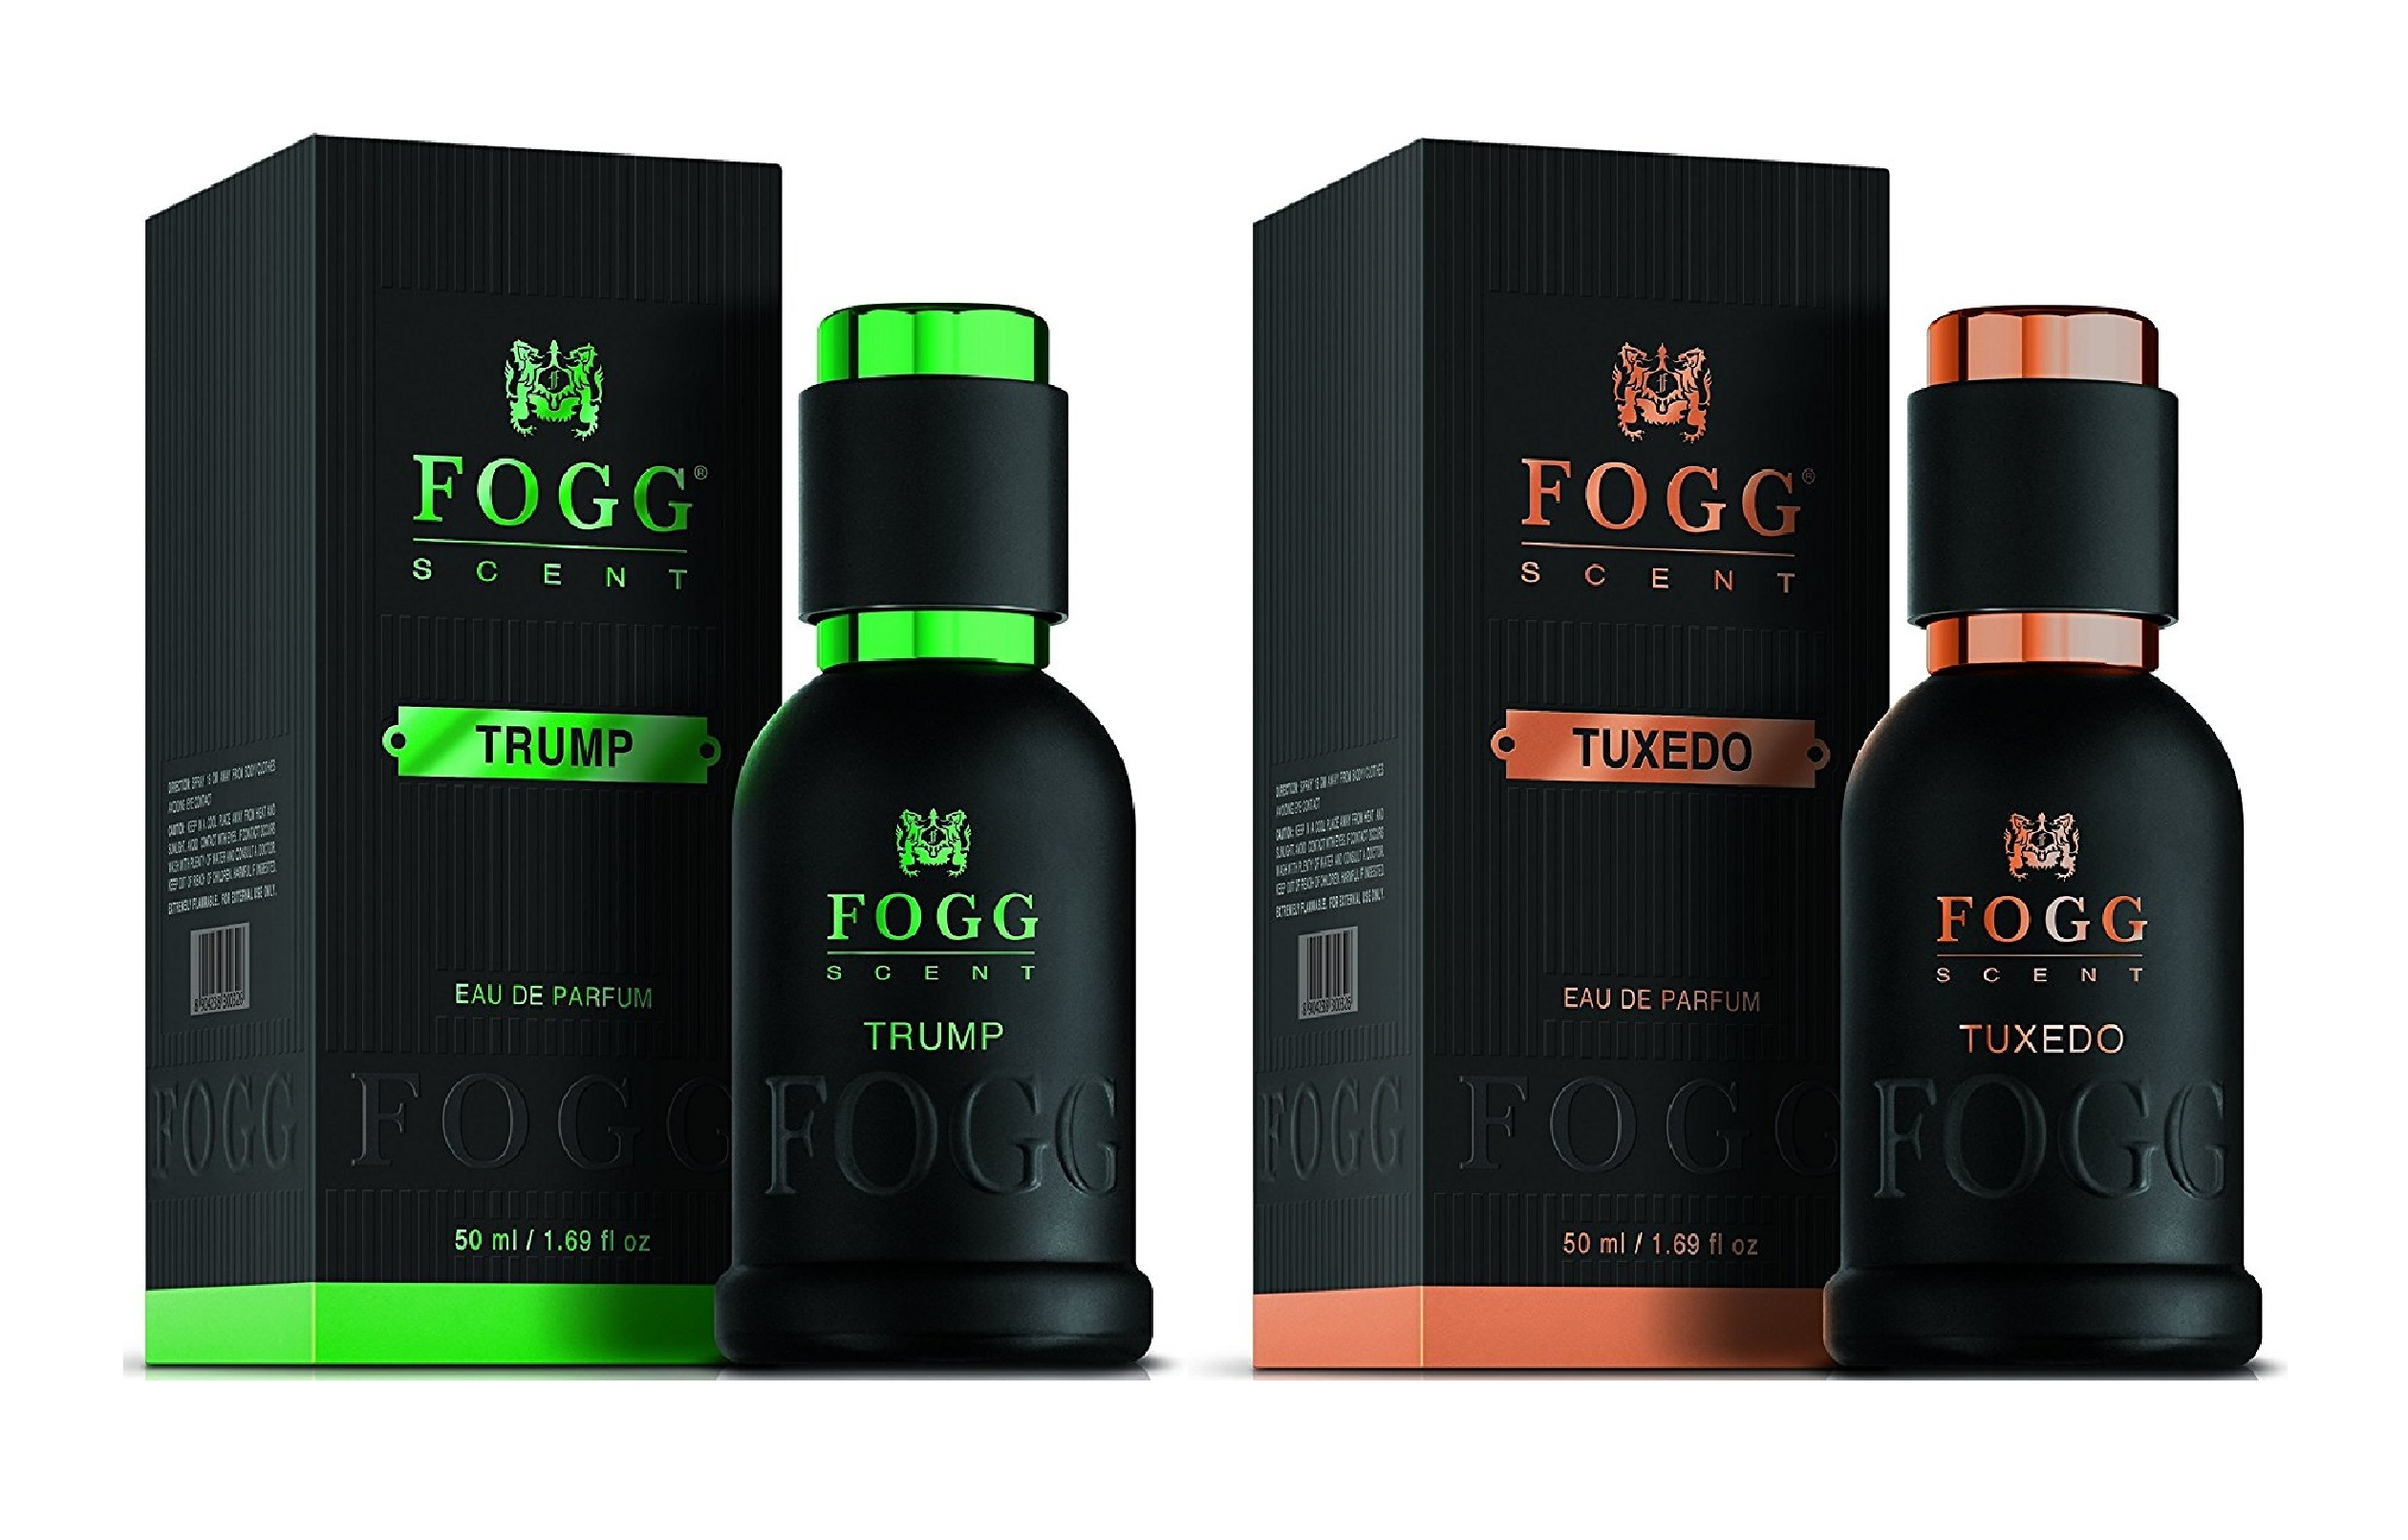 Fogg Scent (Trump & Tuxedo) EDP - 50 ml each (Pack of 2)